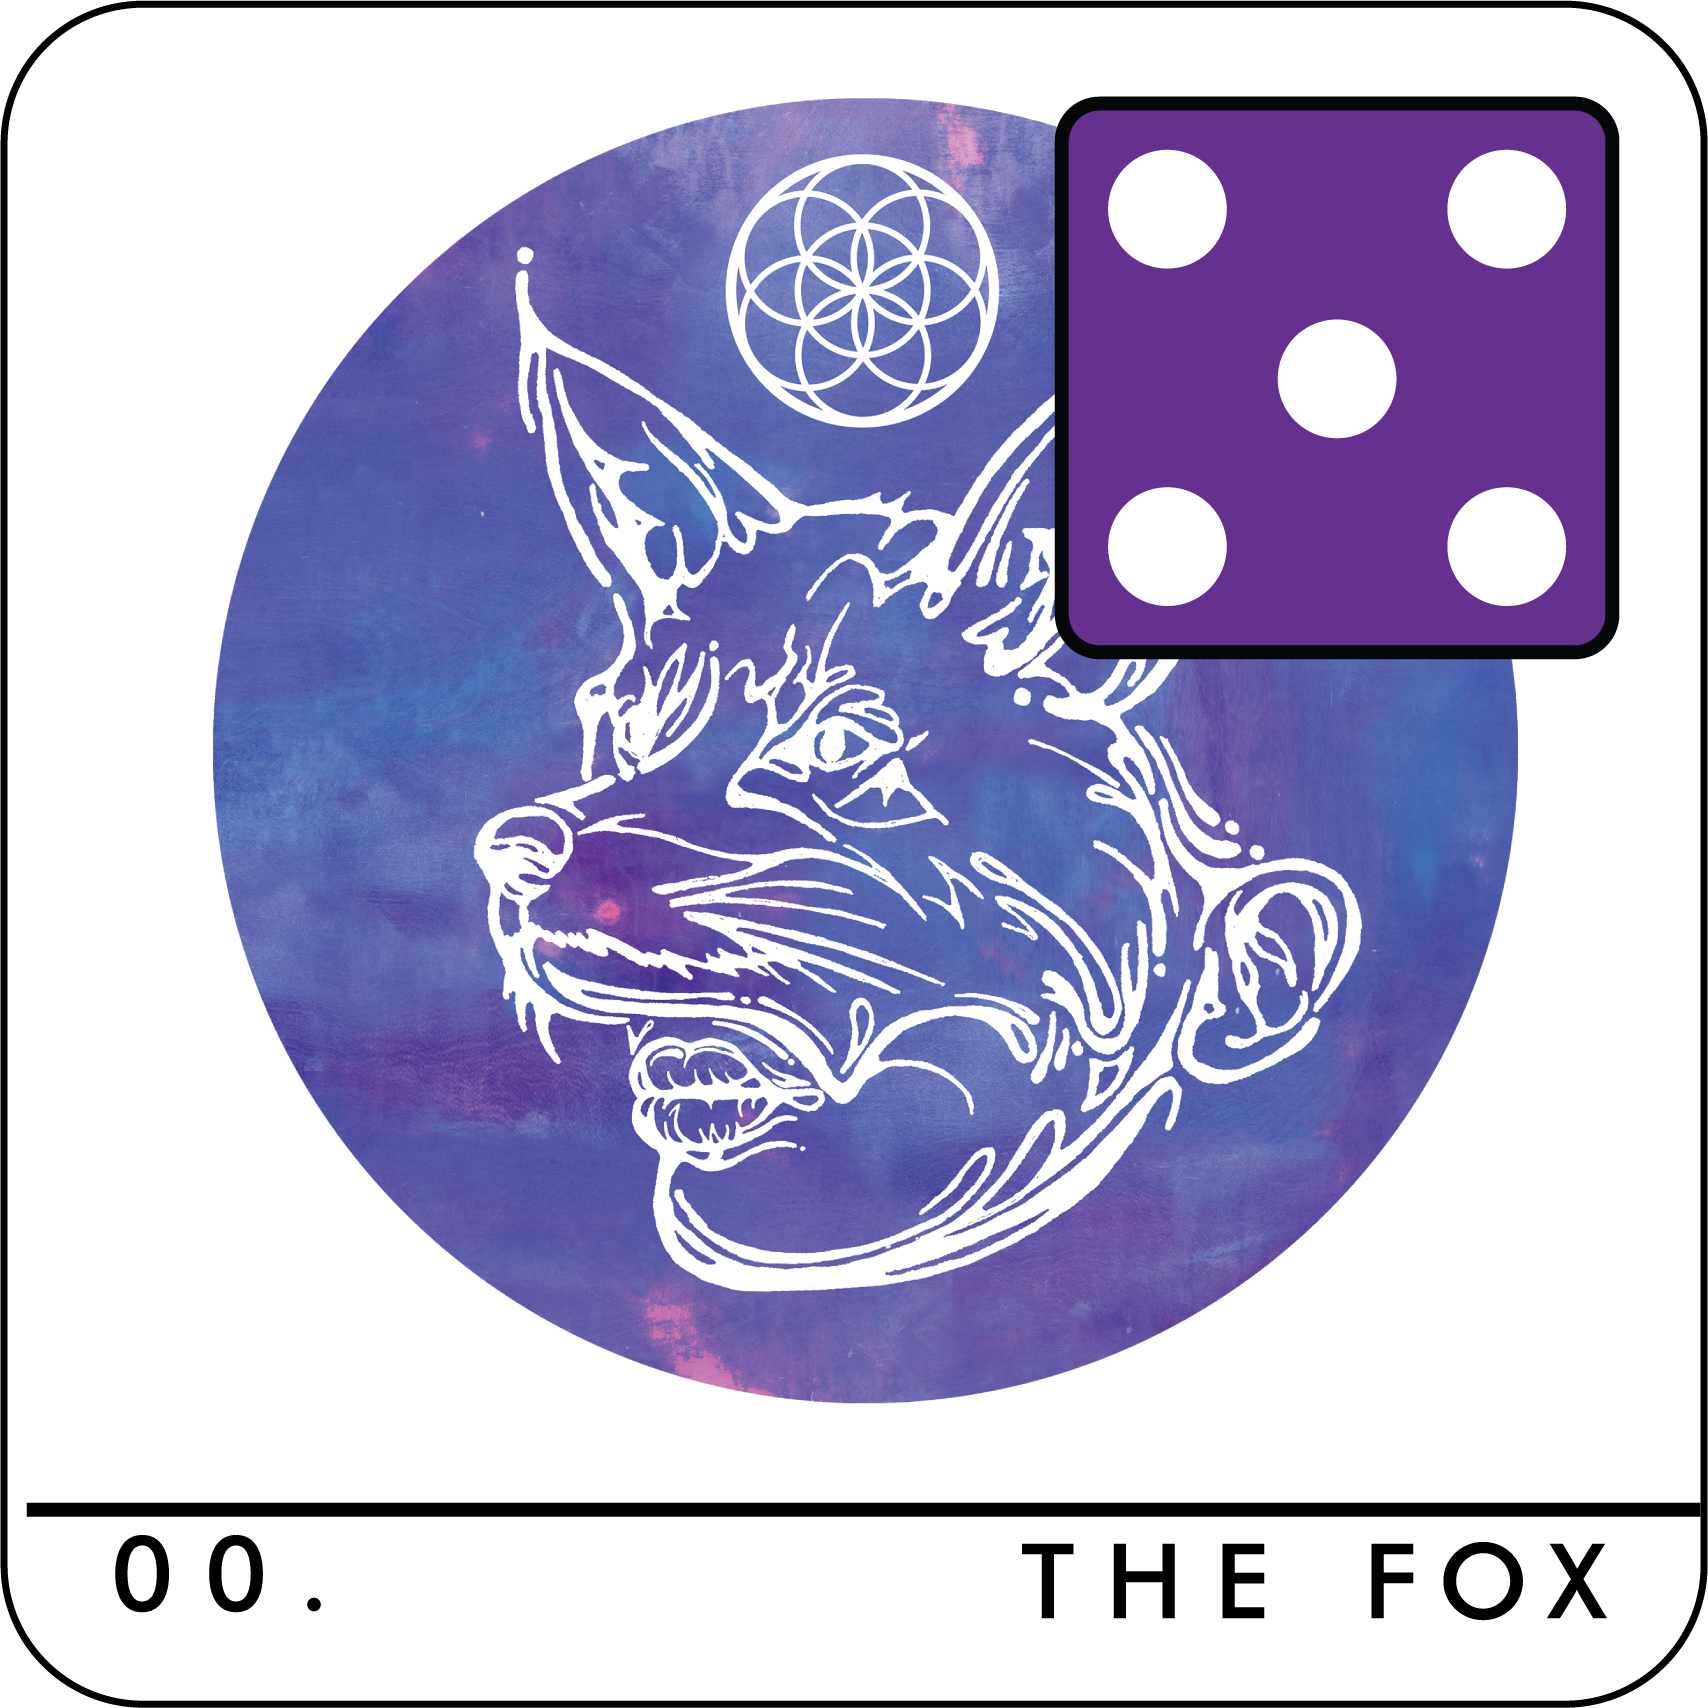 When you do, place the Fox die on the card set to (5). Reduce the die value by (1) at the start of each of your turns.